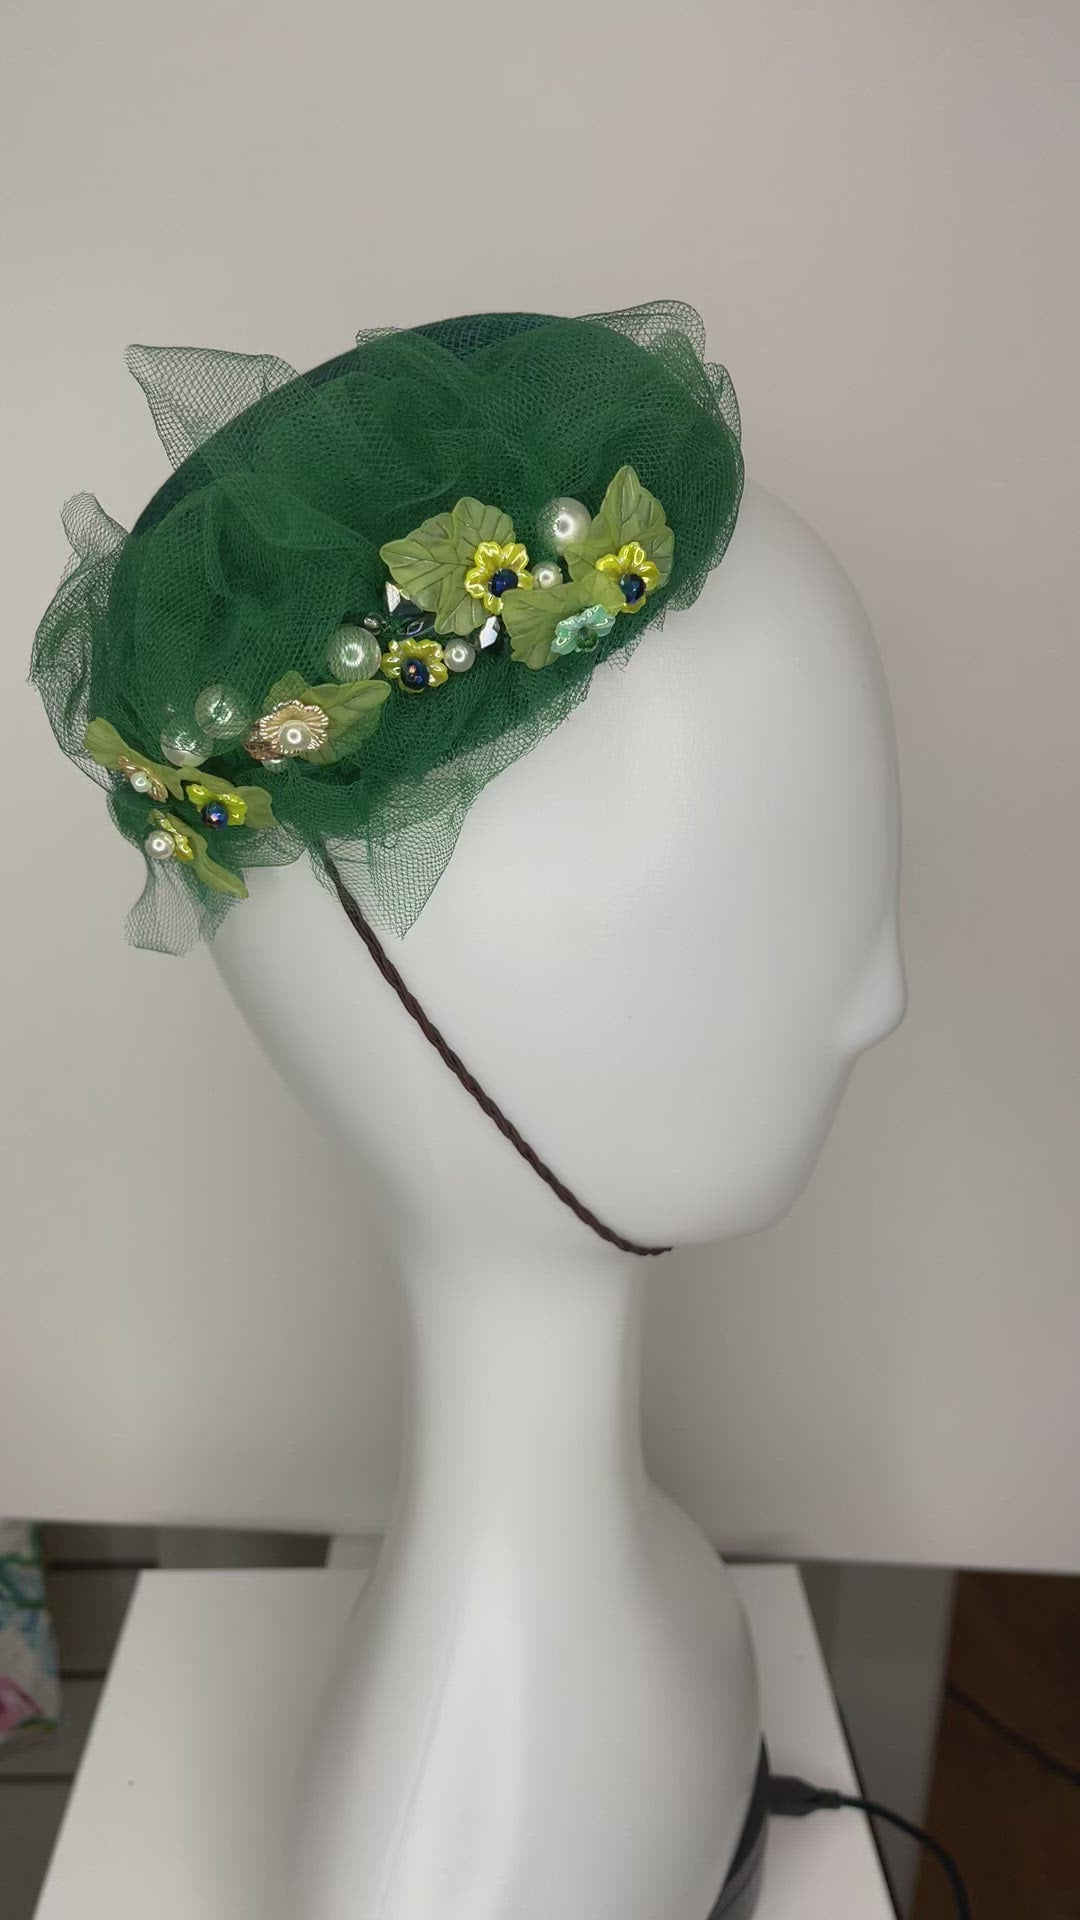 Green embellished hand blocked cocktail hat